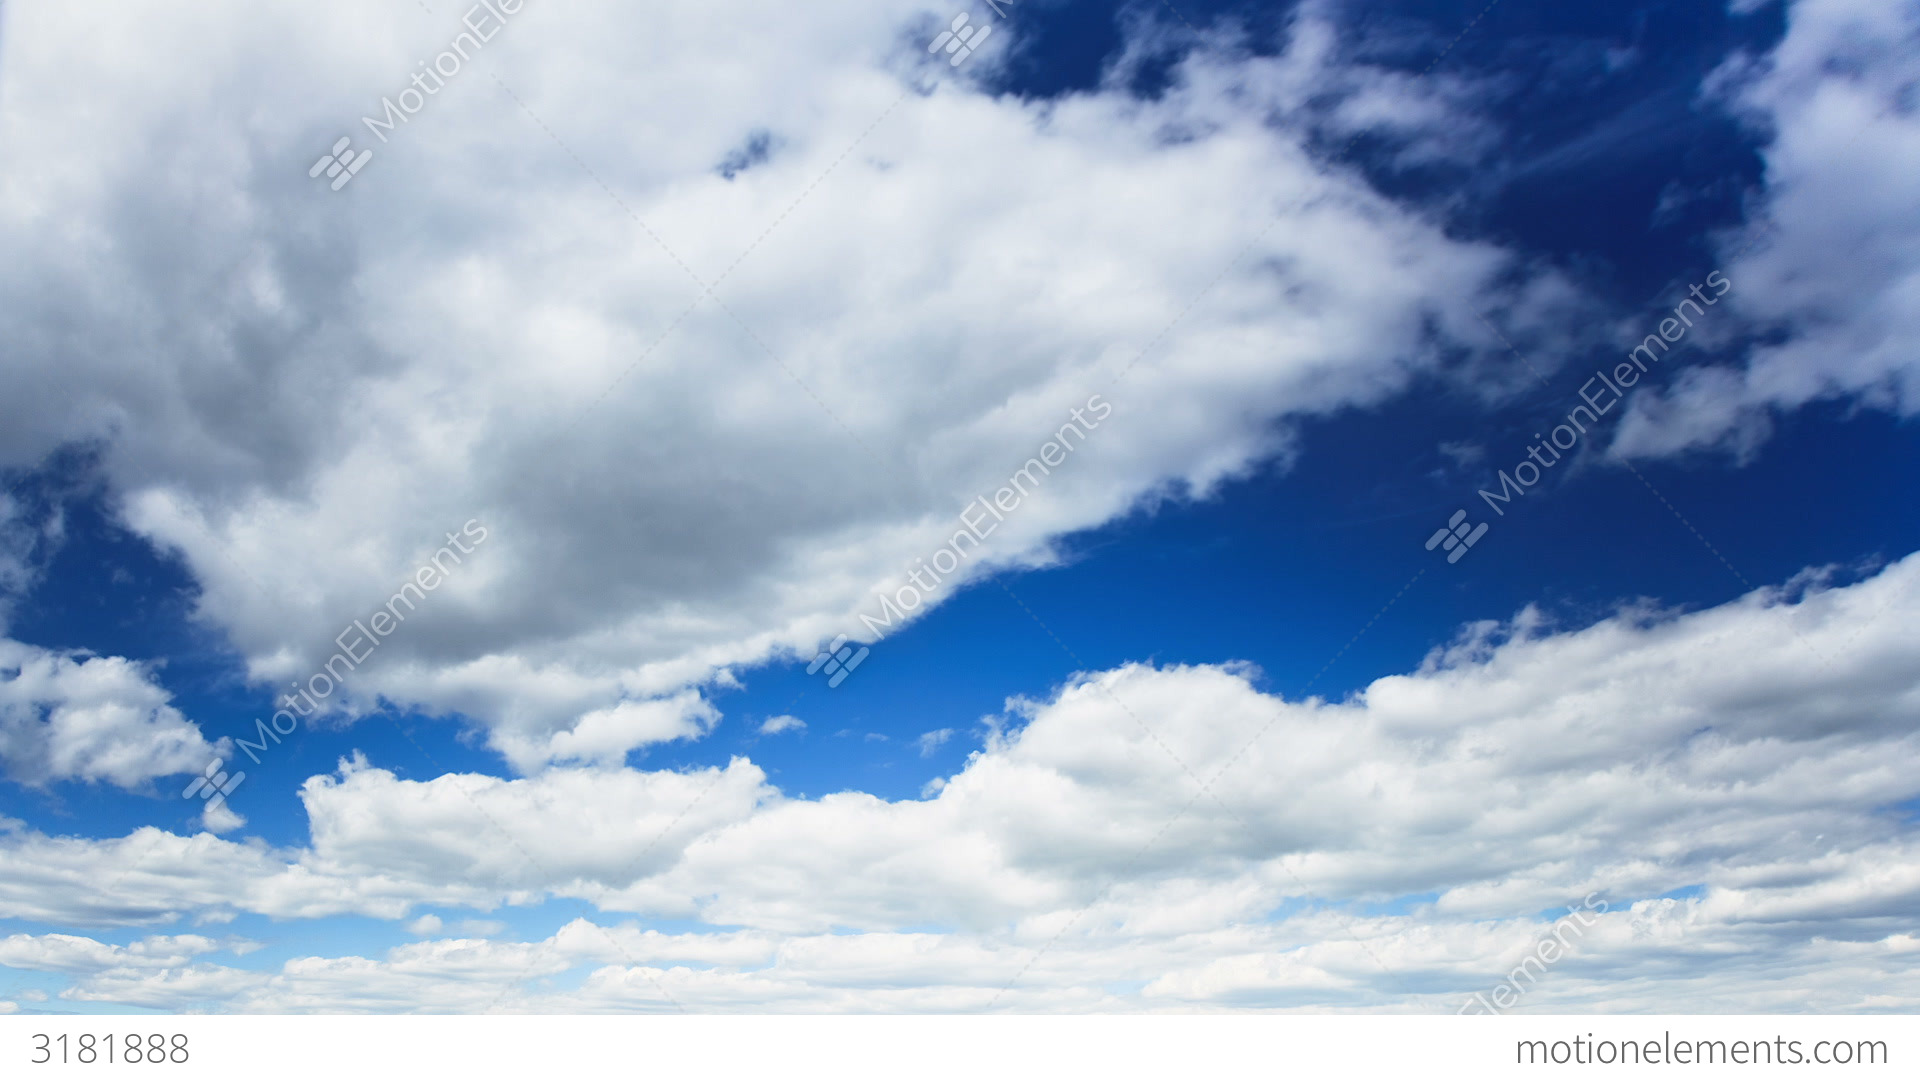 Image result for Images of moving clouds